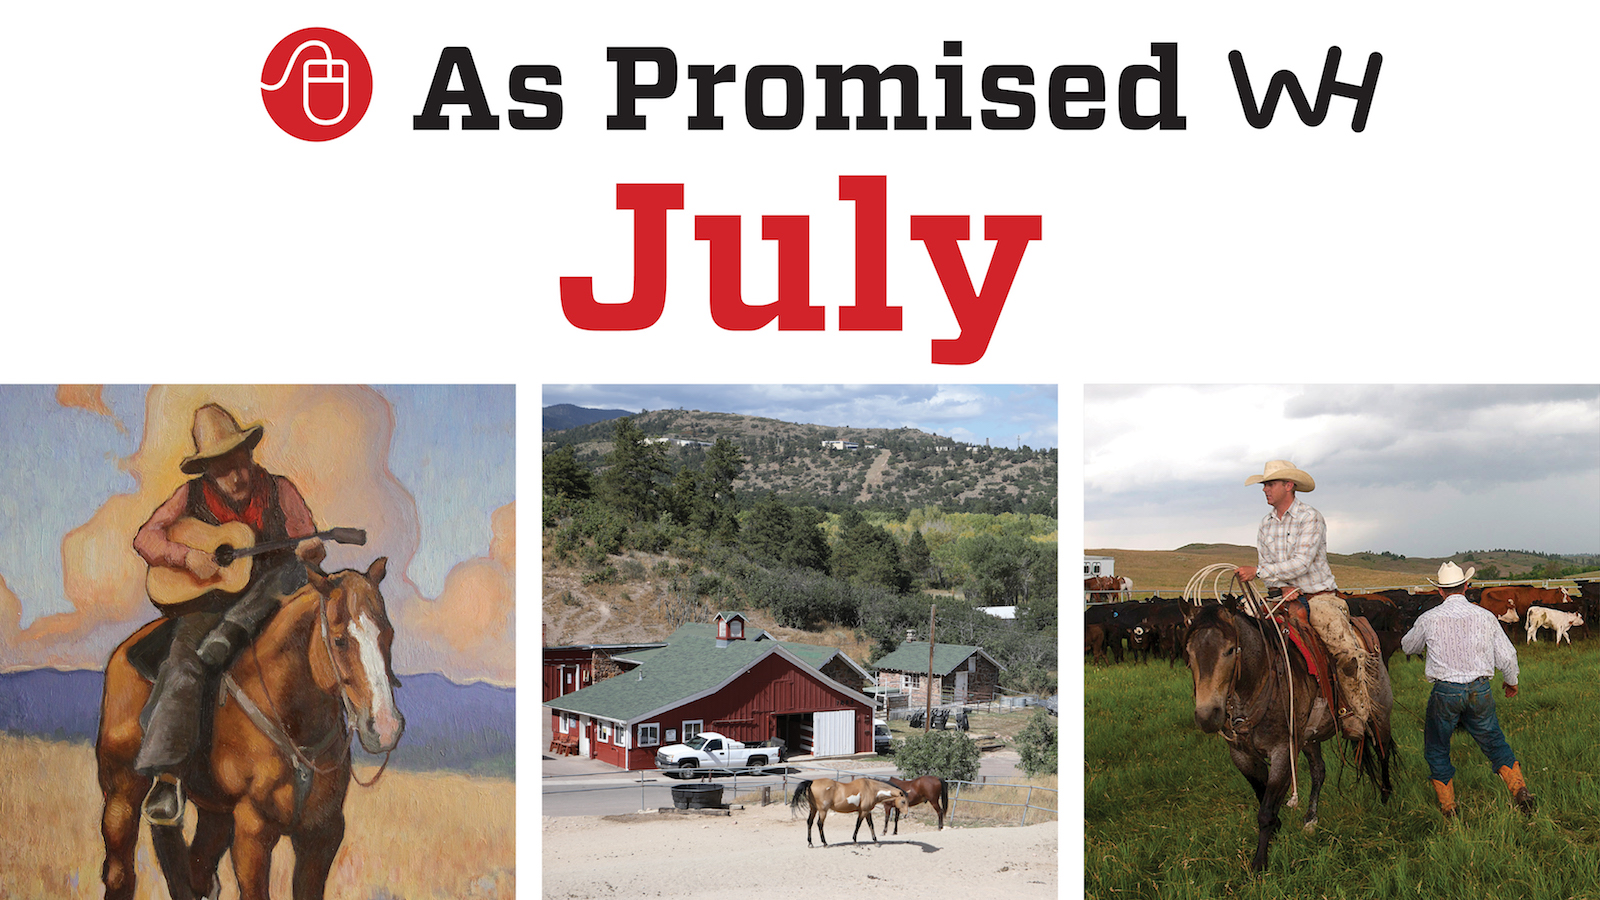 promised content july 2020 Western Horseman magazine